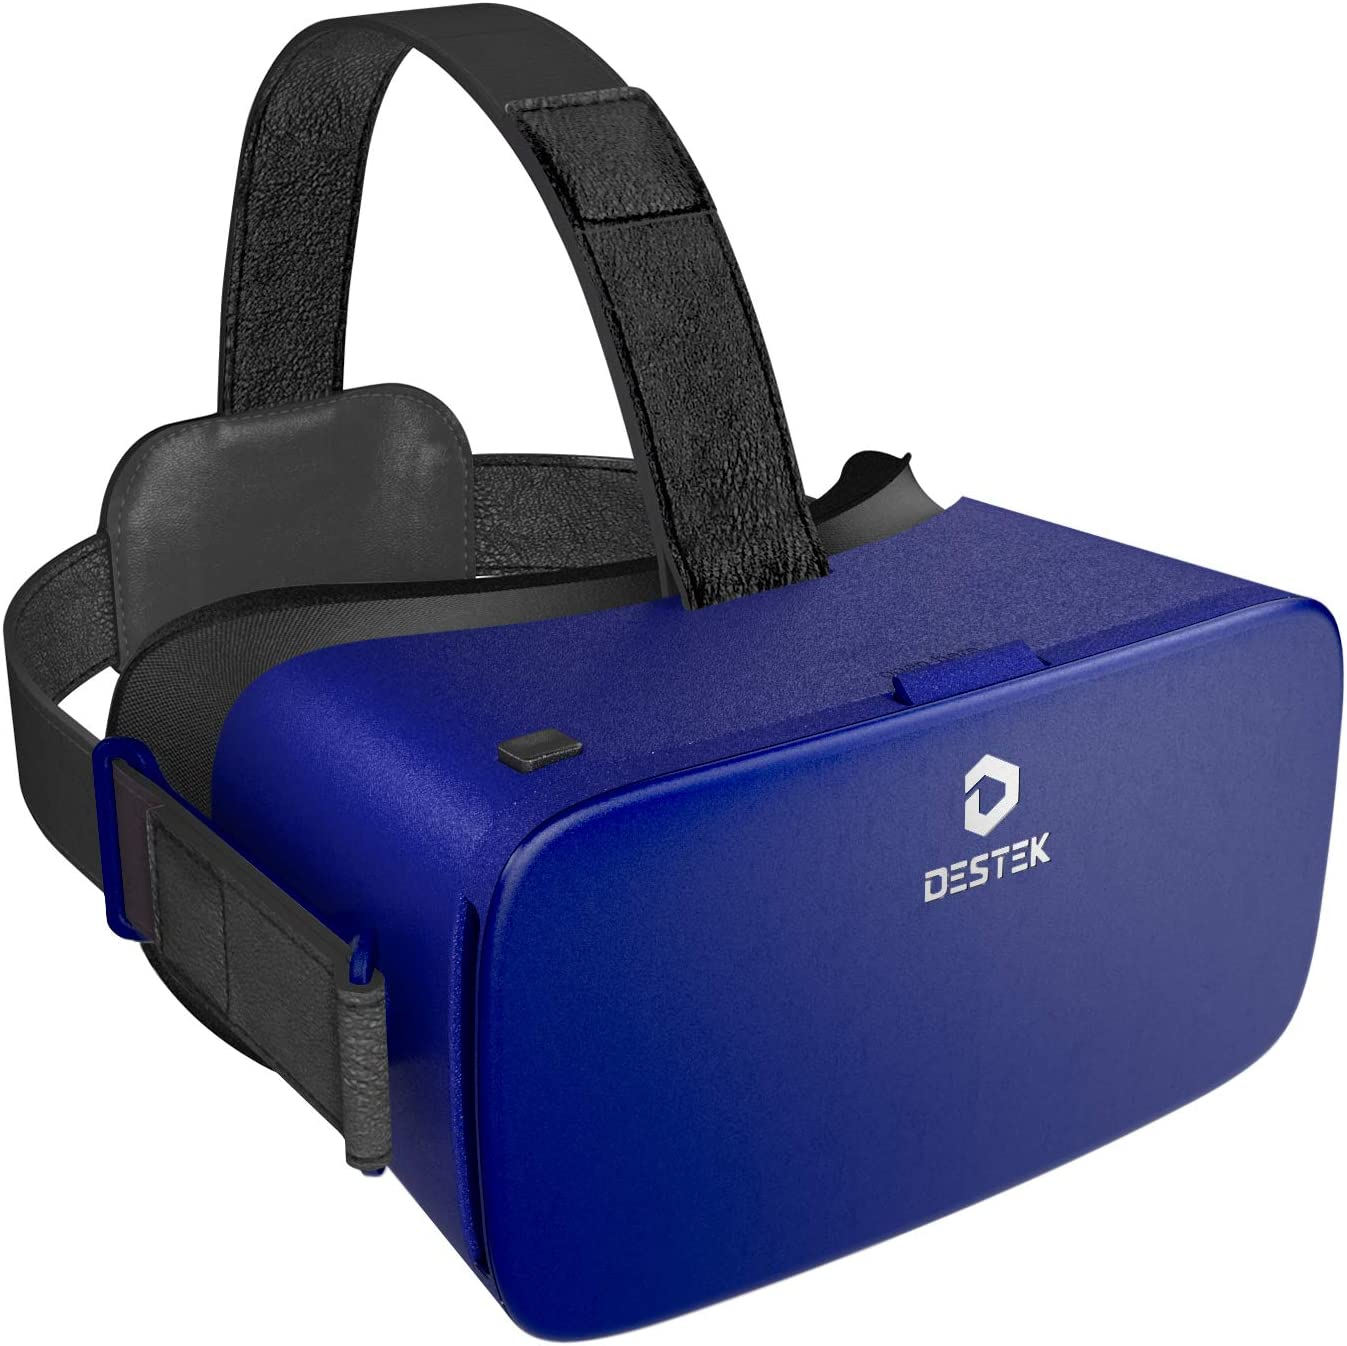 DESTEK VR Headset, for Phones LG W31 Plus/ Sony Xperia 5/ Sony Xperia 5 II/ Samsung Galaxy S10 Plus, Compatible with iPhone and Android Phones 5.5-6.7